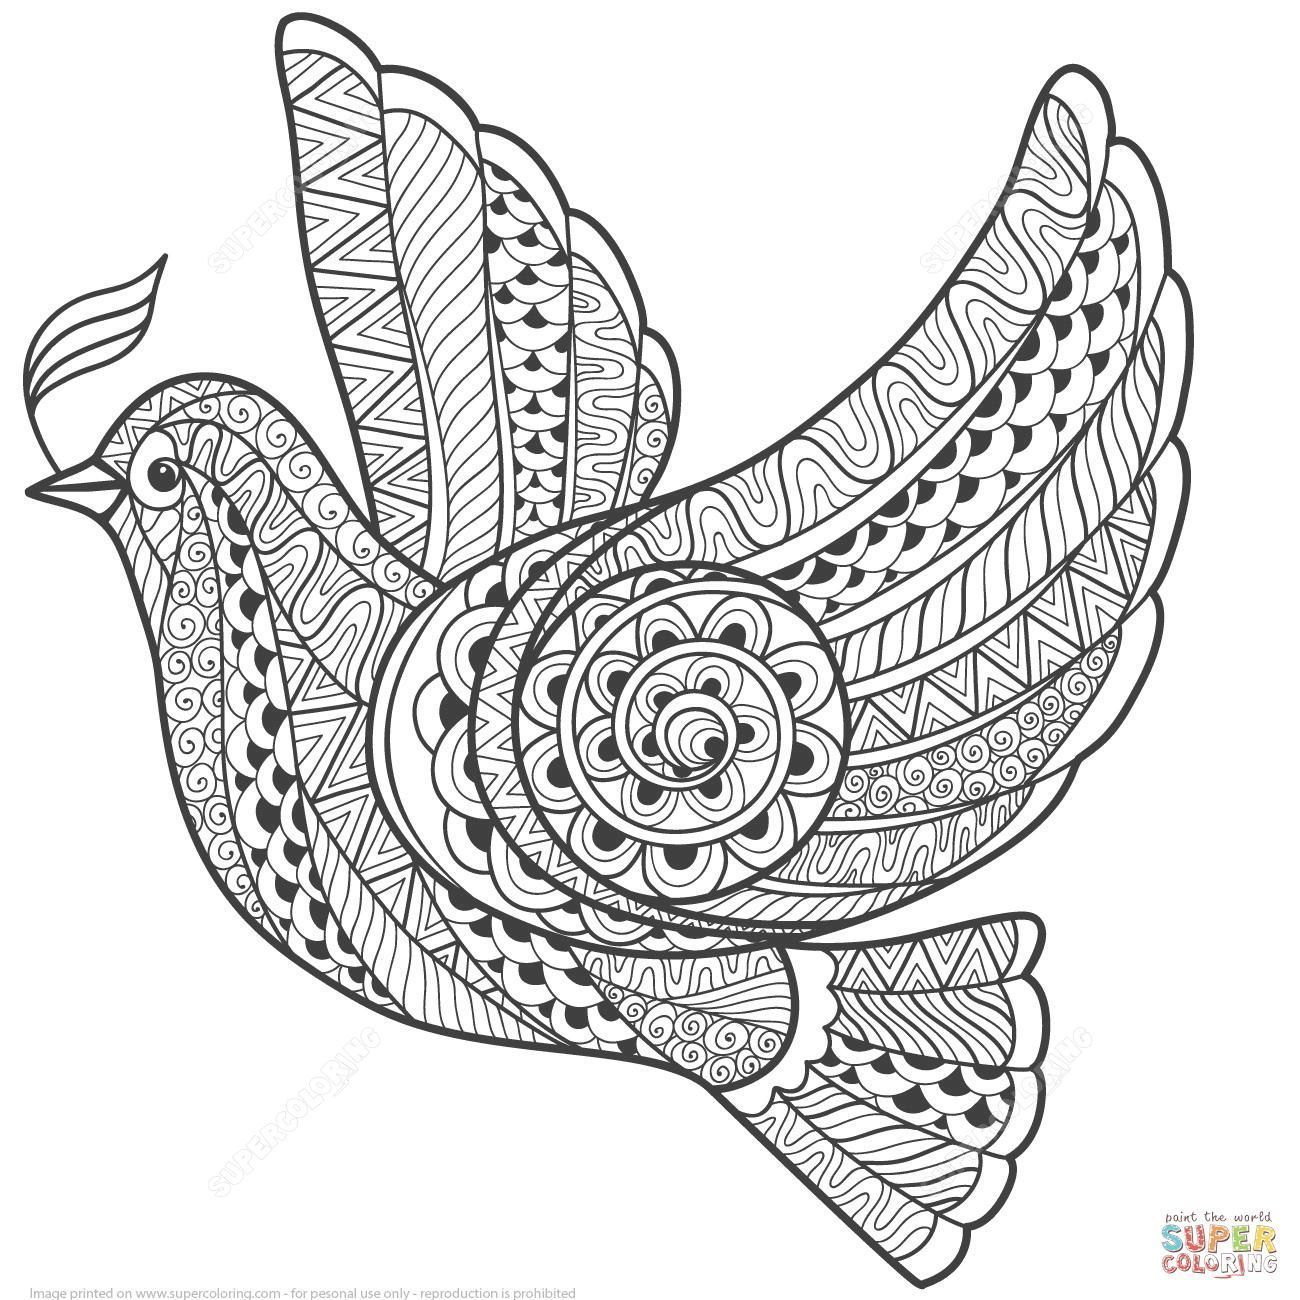 zentangle coloring pages free printable zentangle coloring pages printable at getcoloringscom free coloring pages zentangle printable